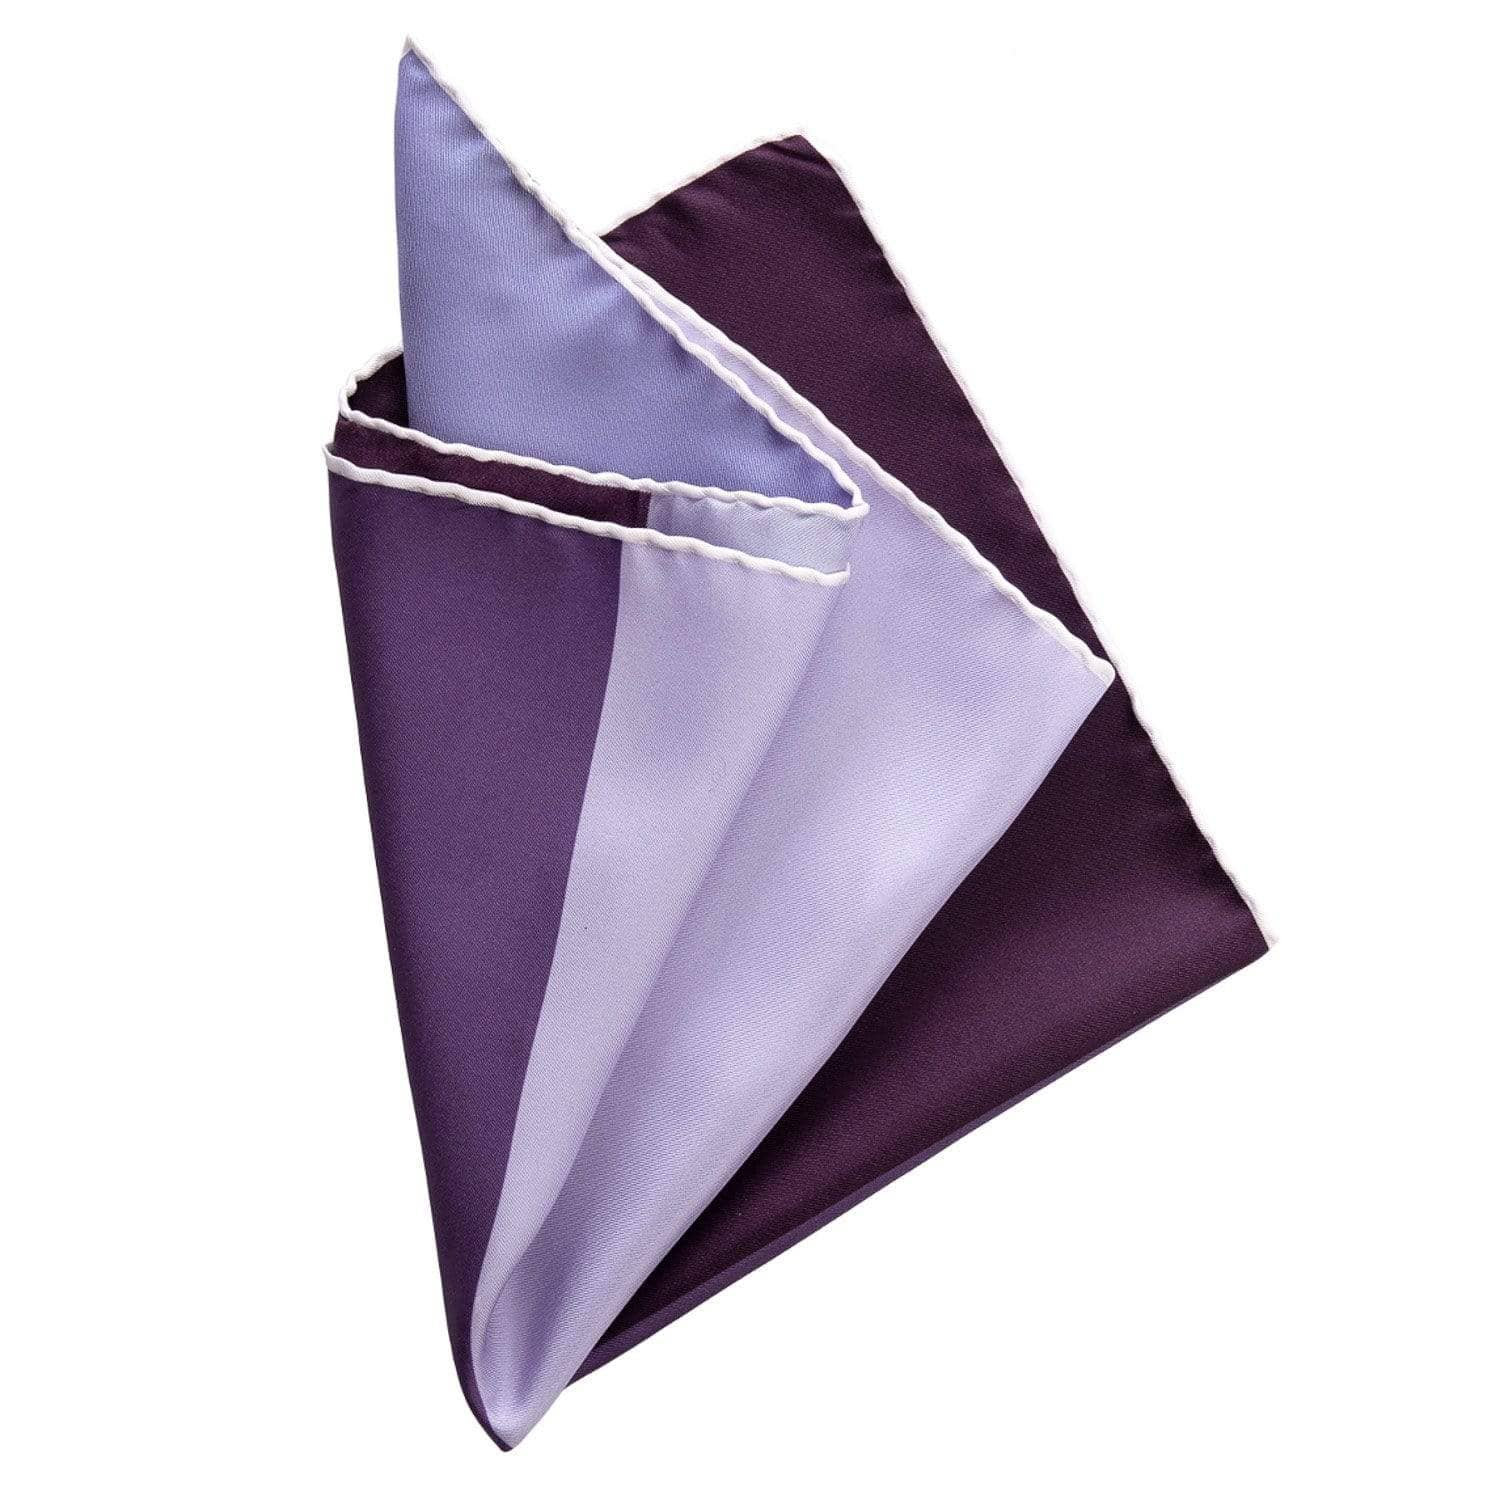 Hand Rolled Silk Pocket Square - Large - Plum Purple